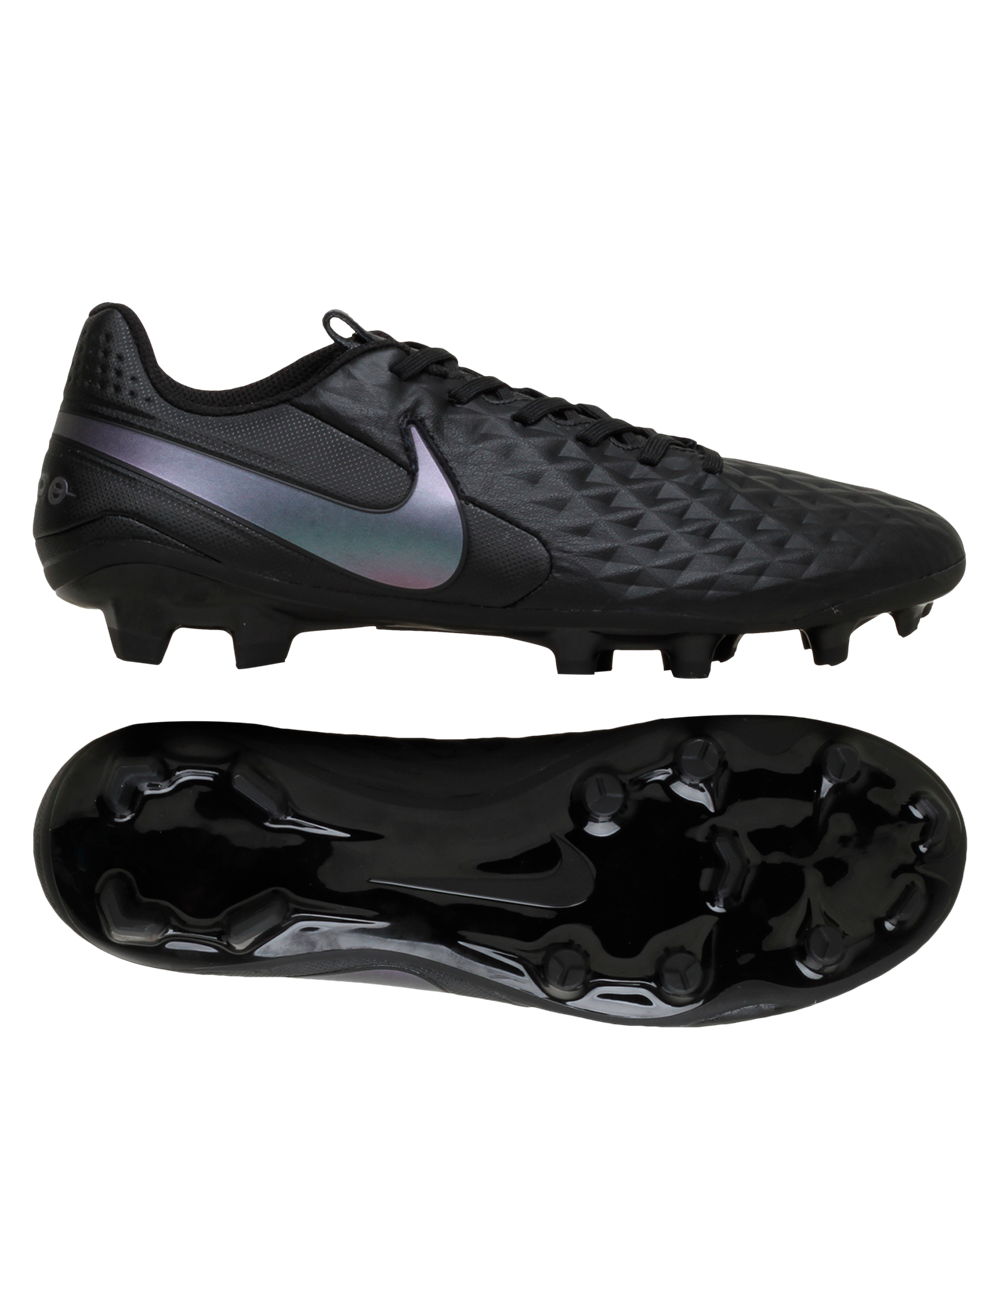 NIKE TIEMPO LEGEND 8 ACADEMY | FGMG KINETIC BLACK